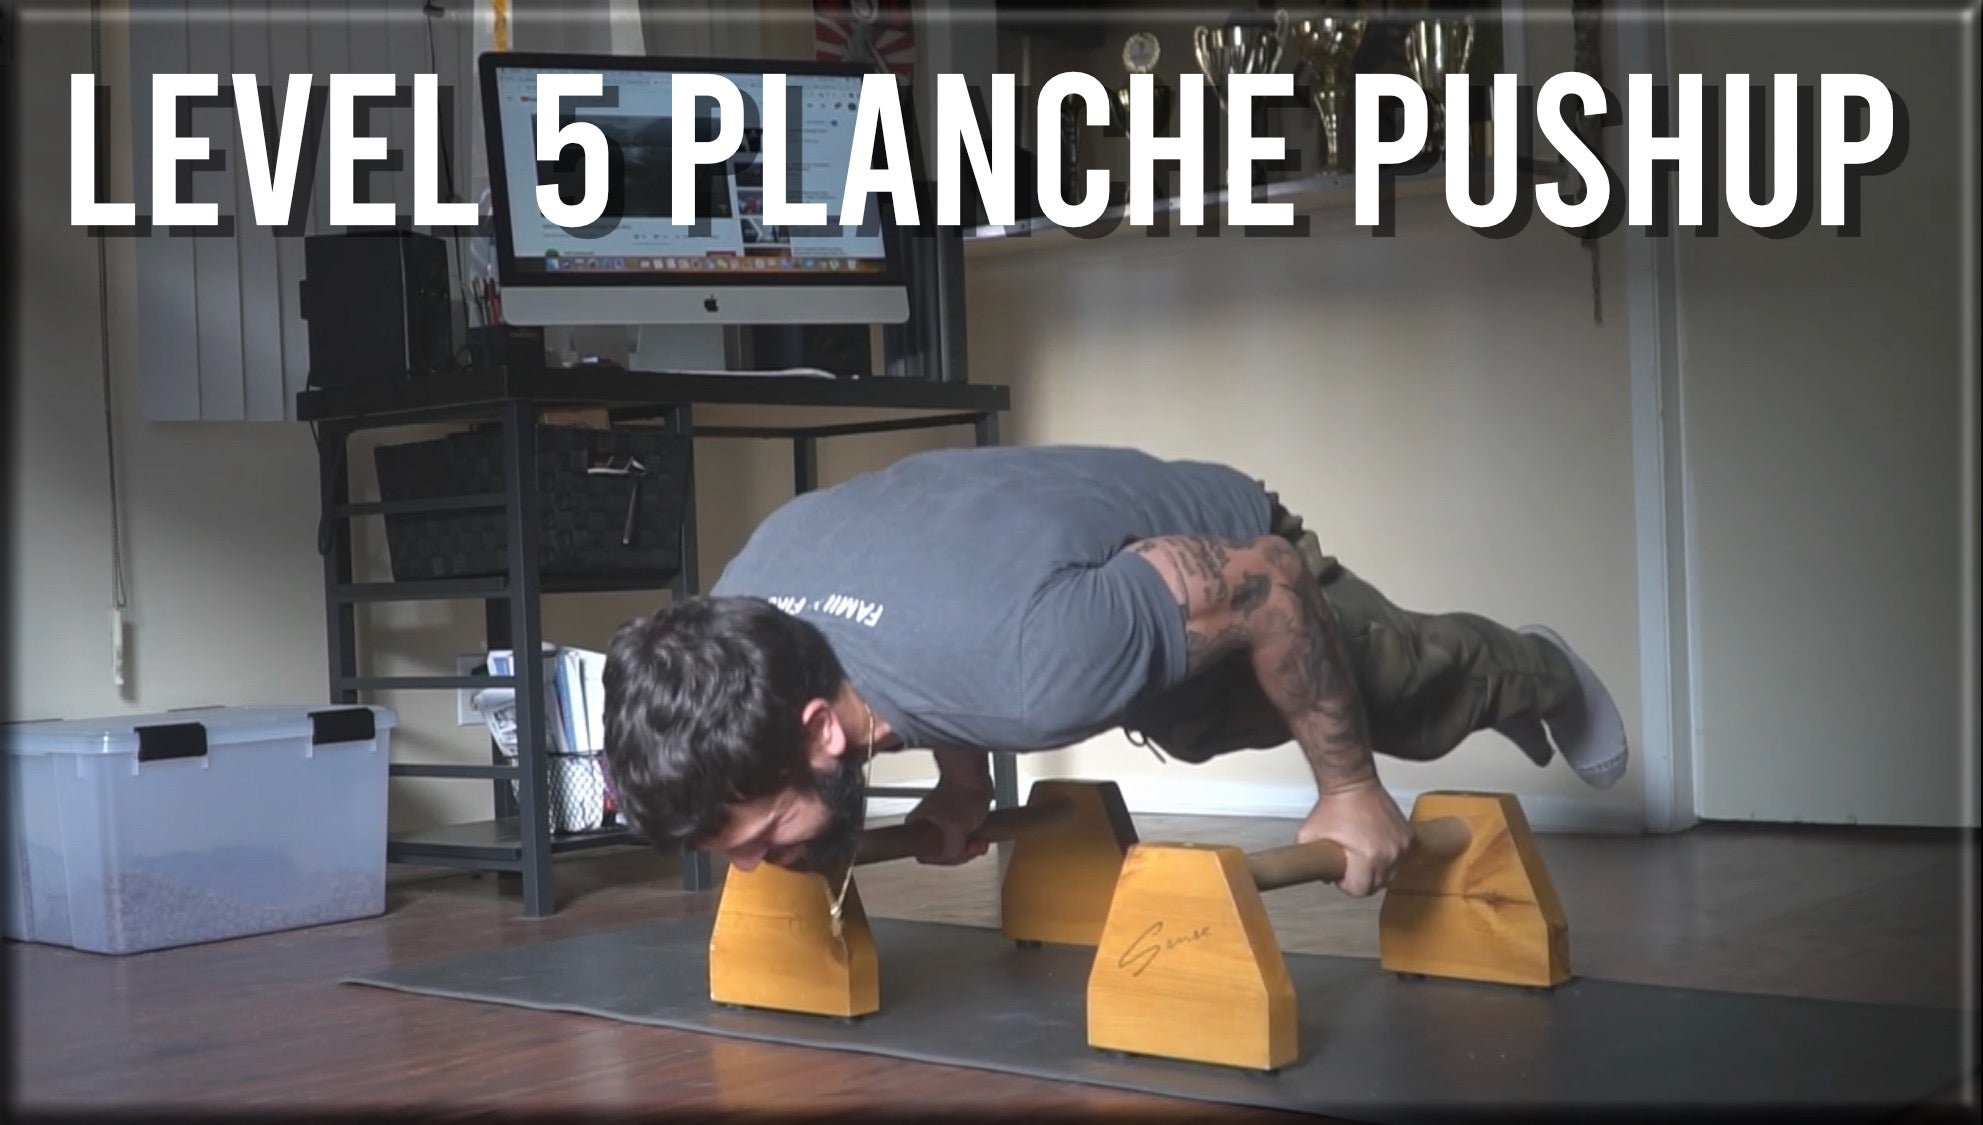 Level 5 Planche Pushup